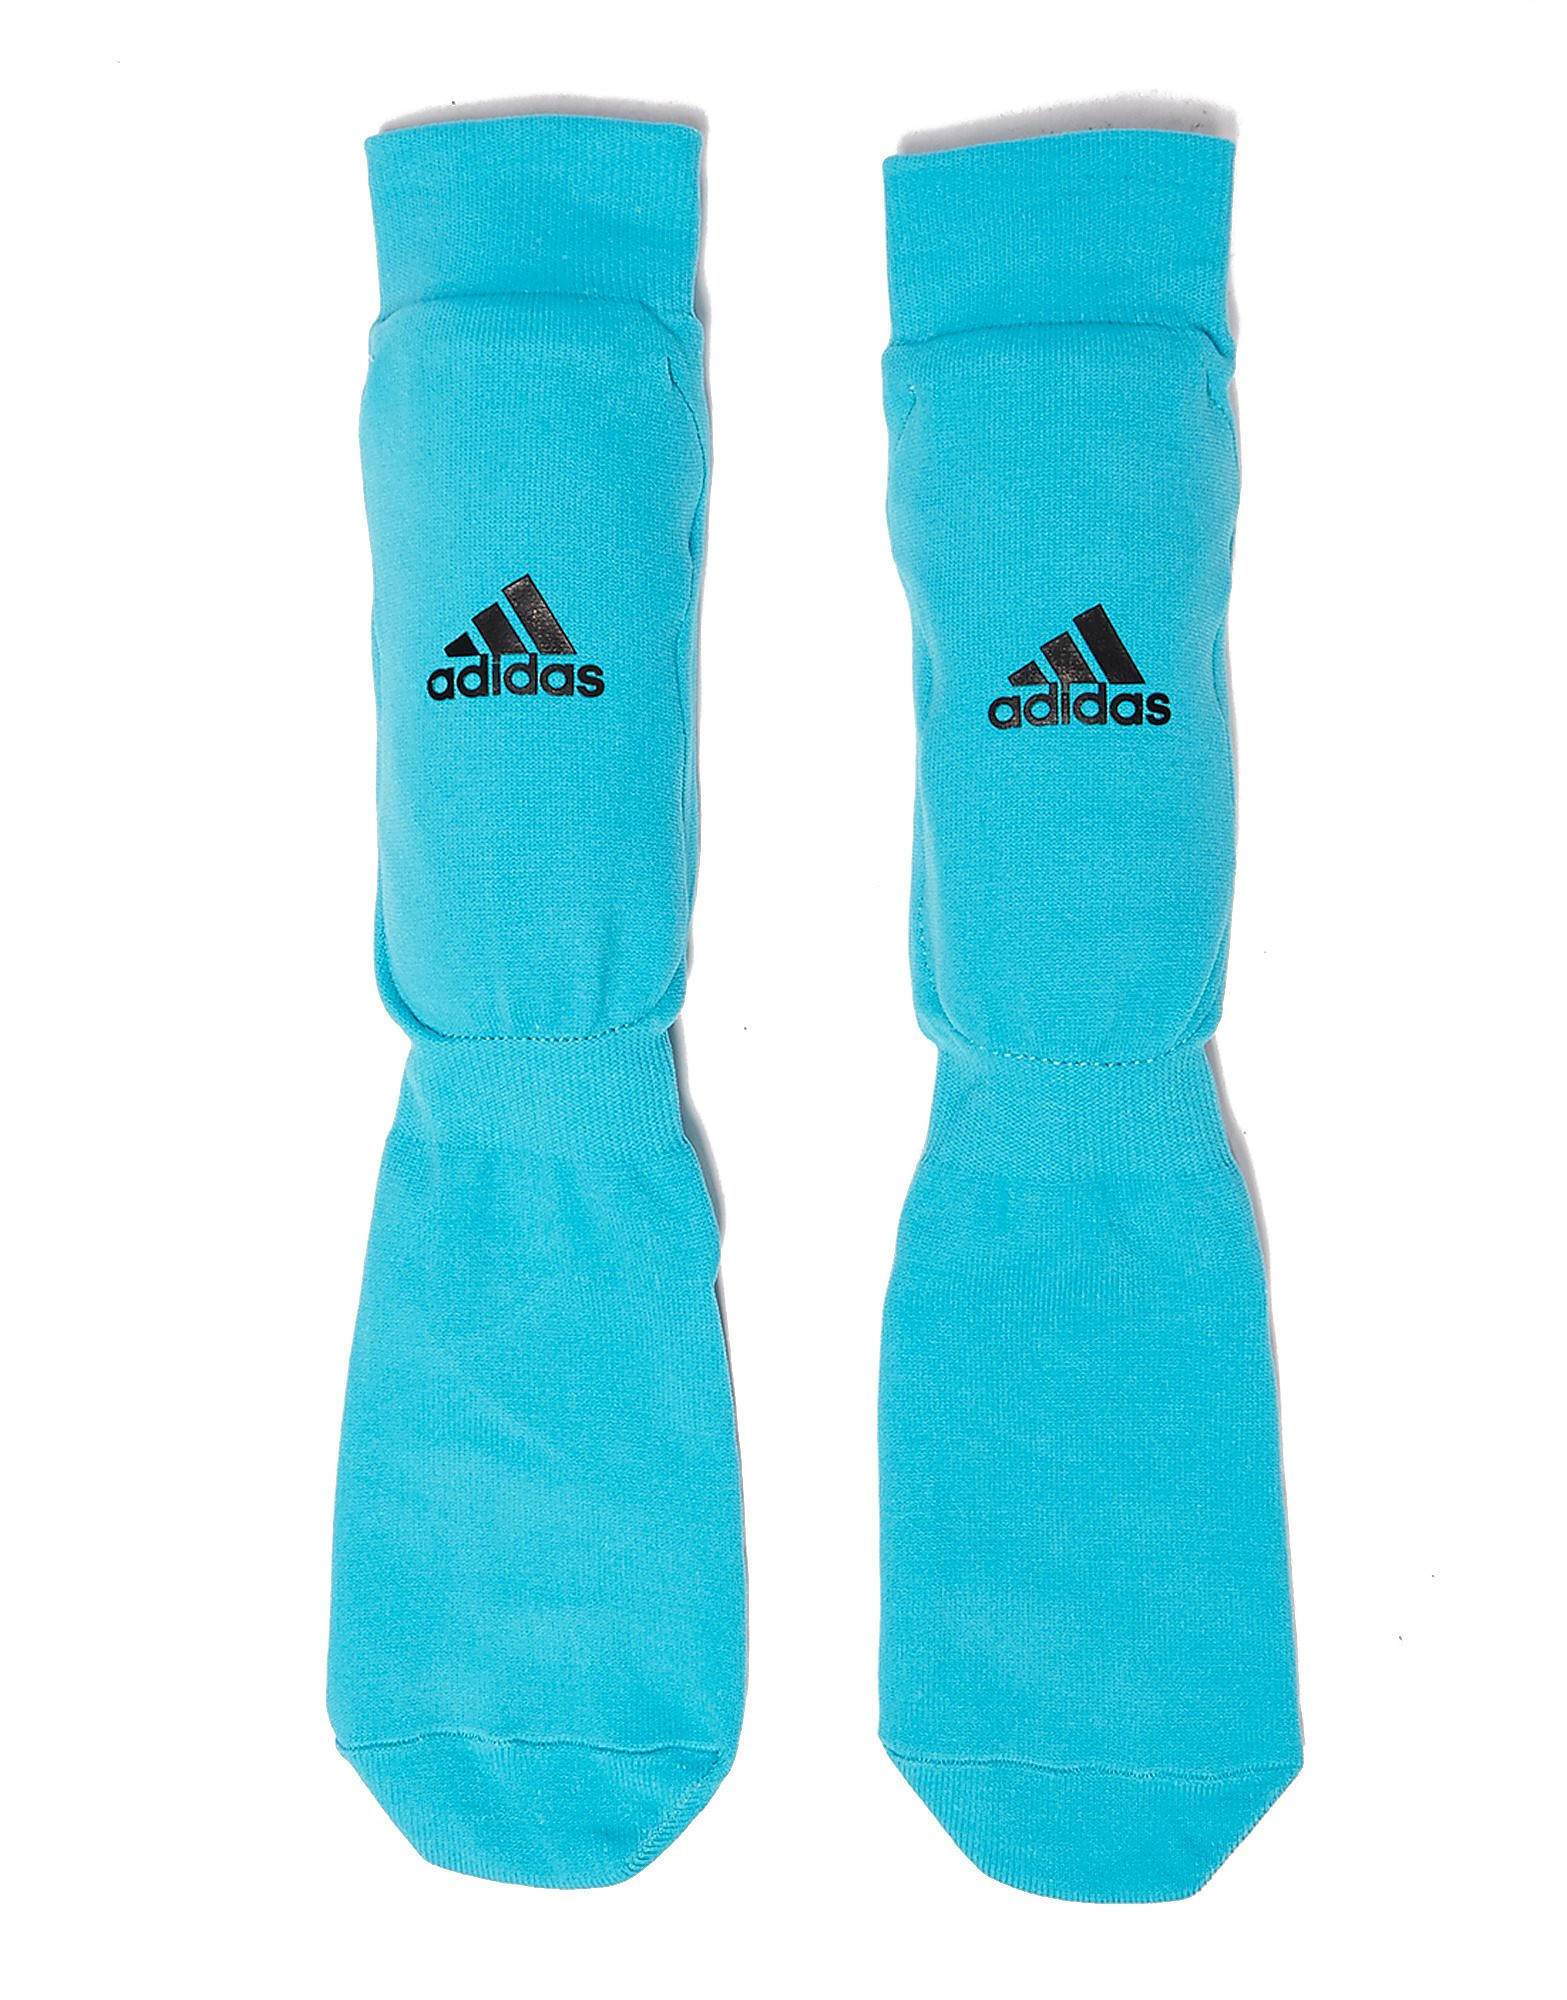 adidas Chaussettes Youth Guard Junior